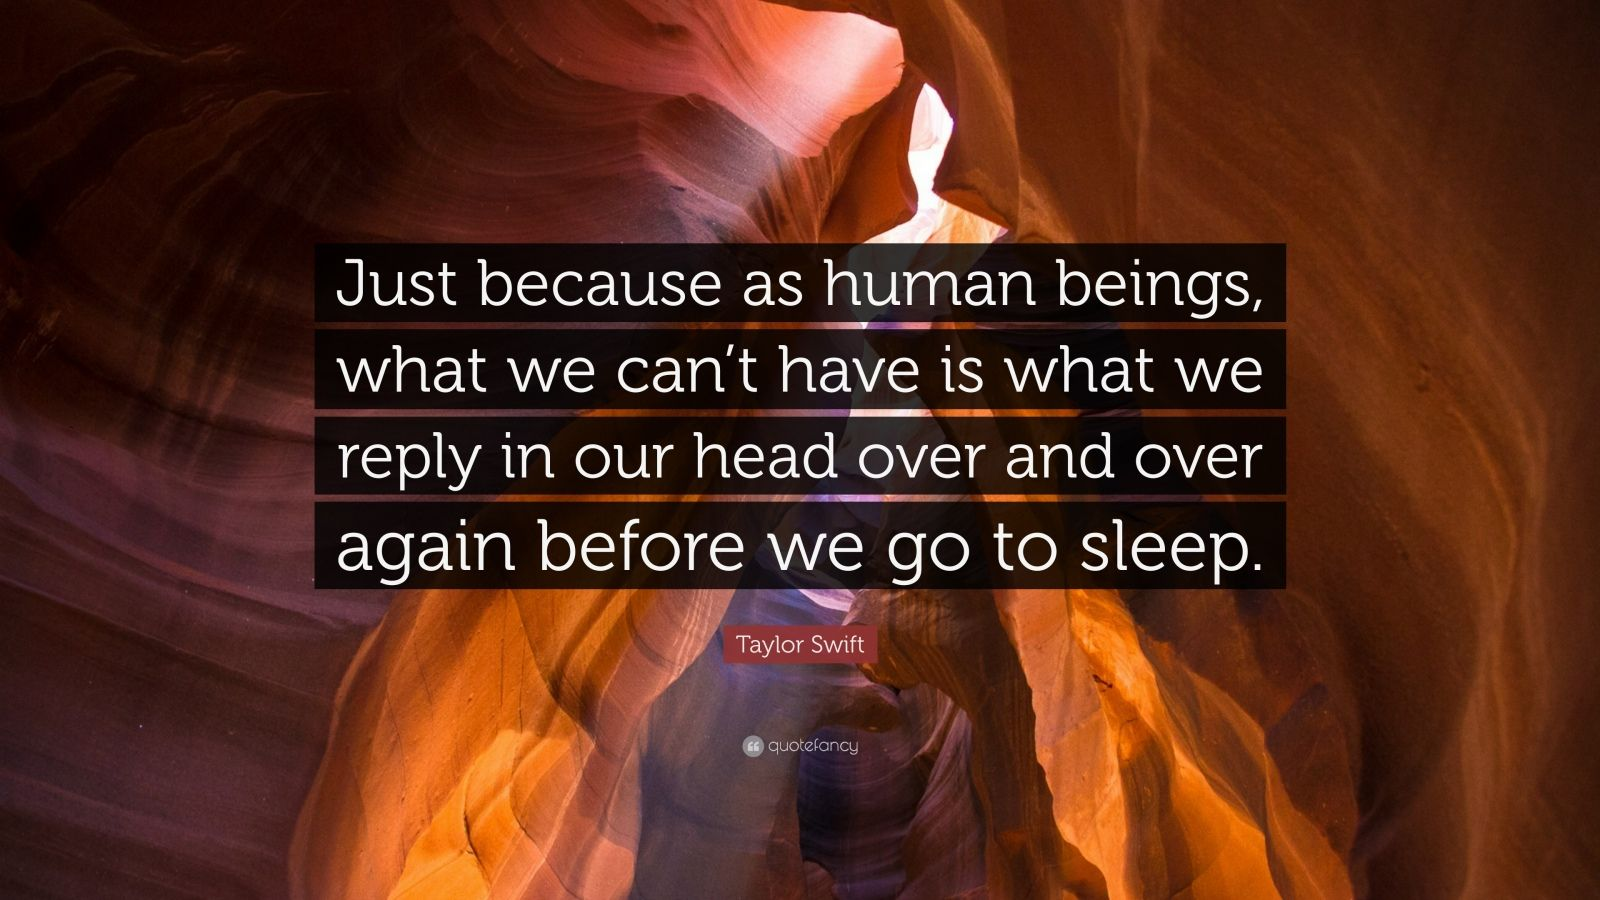 """Taylor Swift Quote: """"Just because as human beings, what we can't have is what we reply in our head over and over again before we go to sleep."""""""